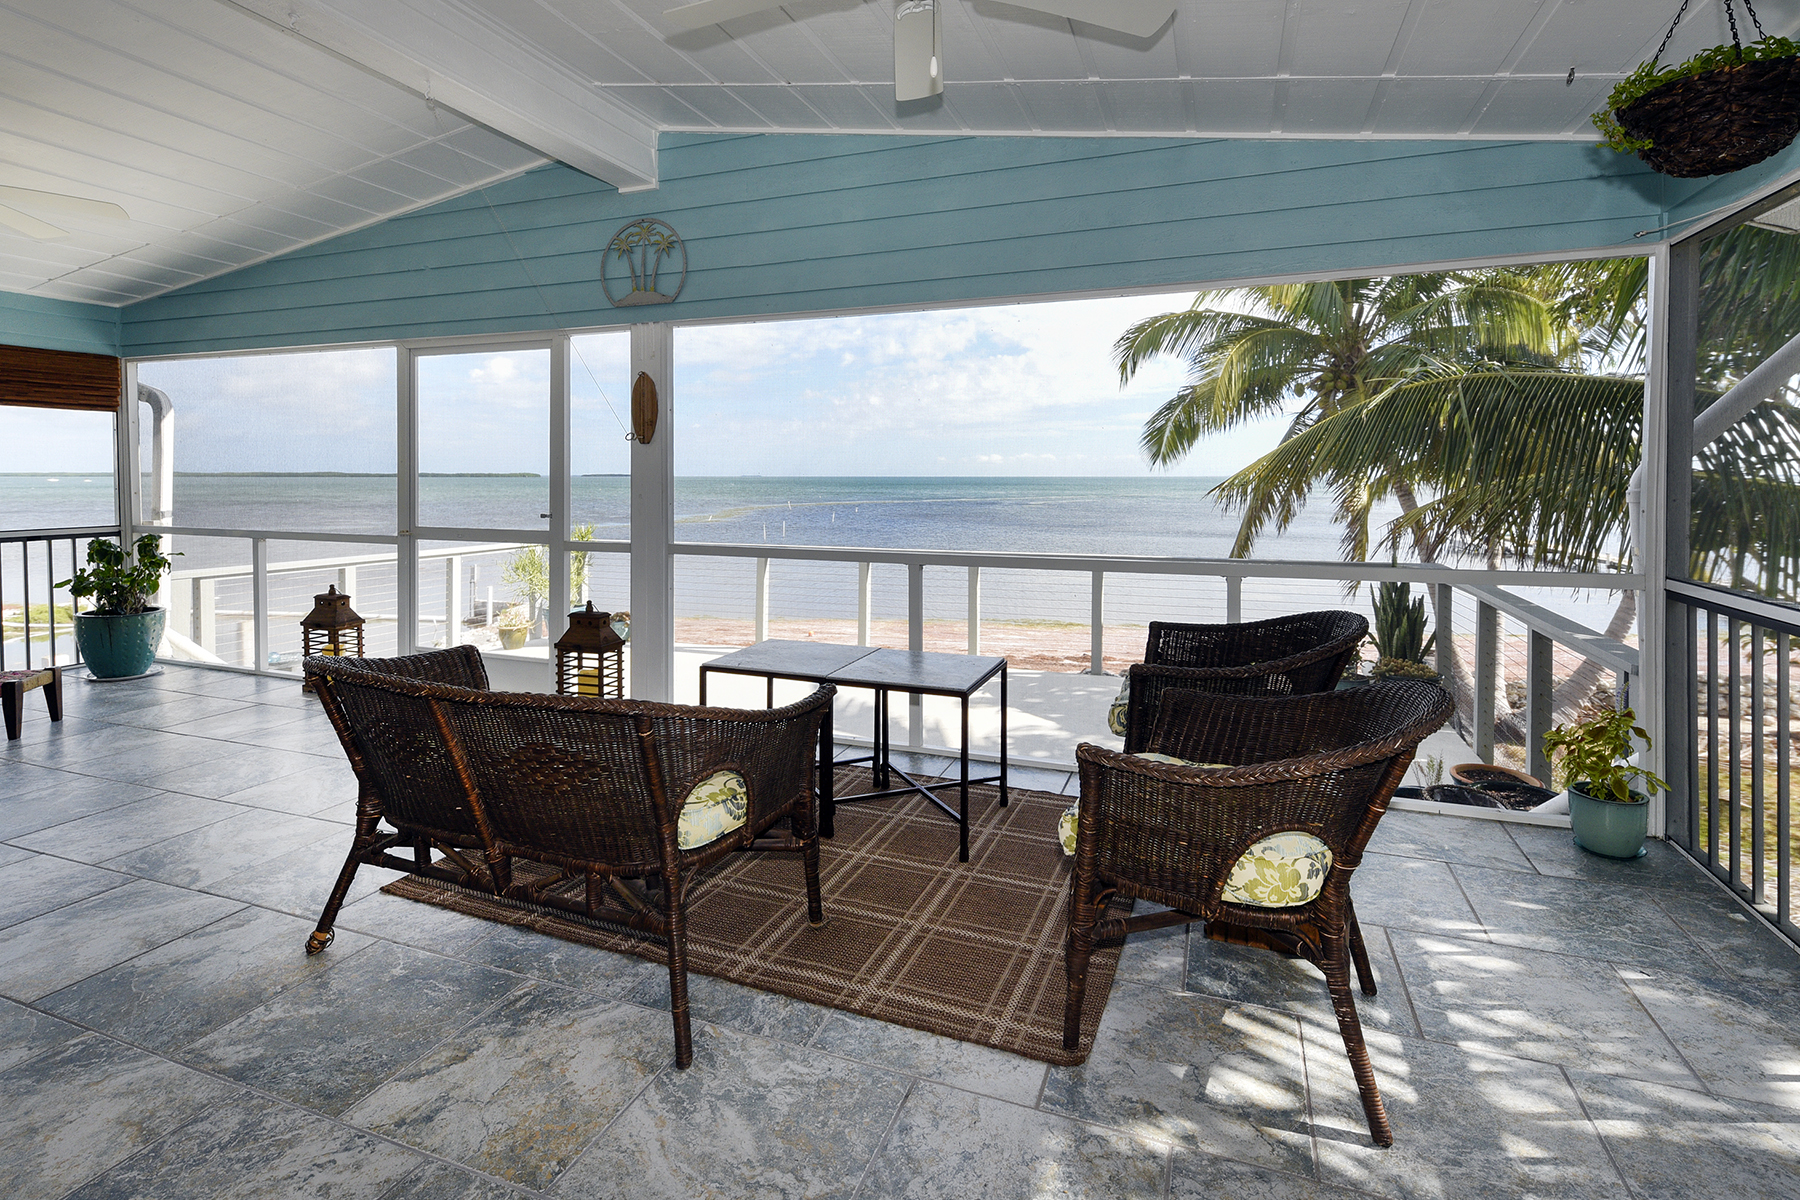 Single Family Home for Sale at Commanding Water Views 32857 Tortuga Lane No Name Key, Florida, 33043 United States